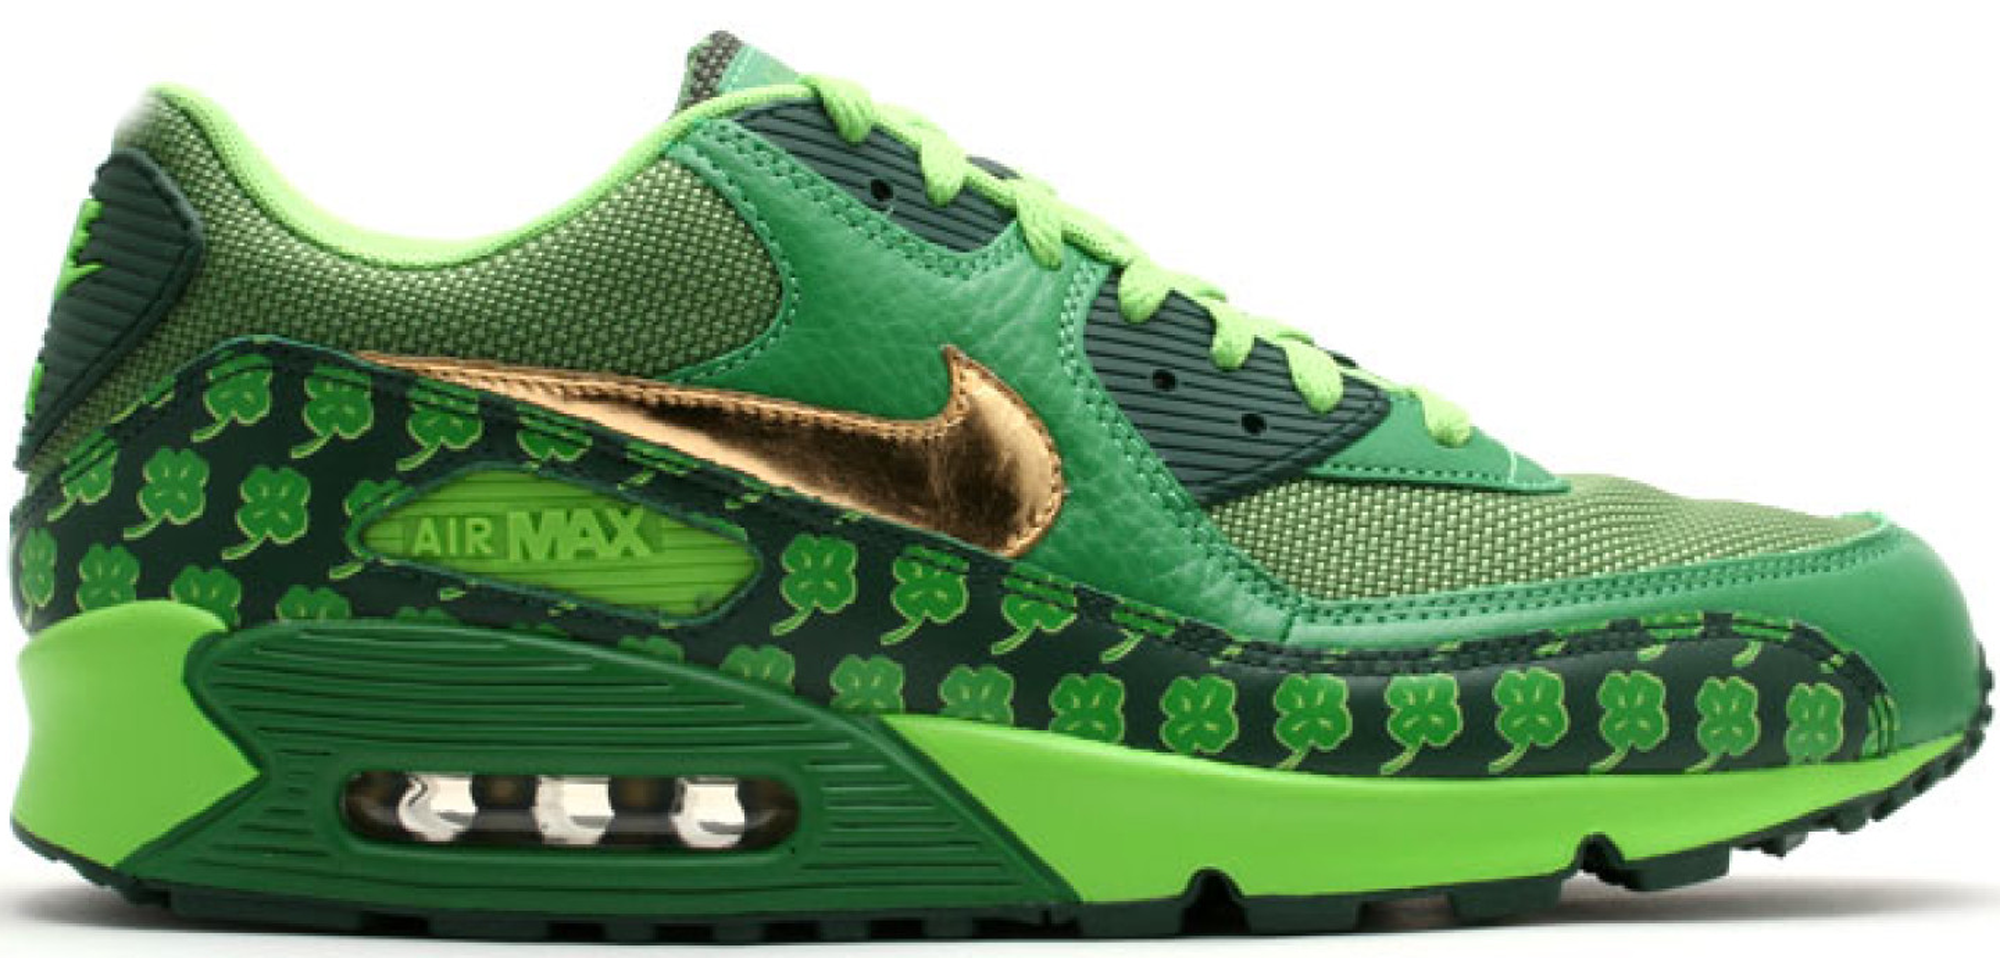 Nike Air Max 90 St. Patty's Day (2007